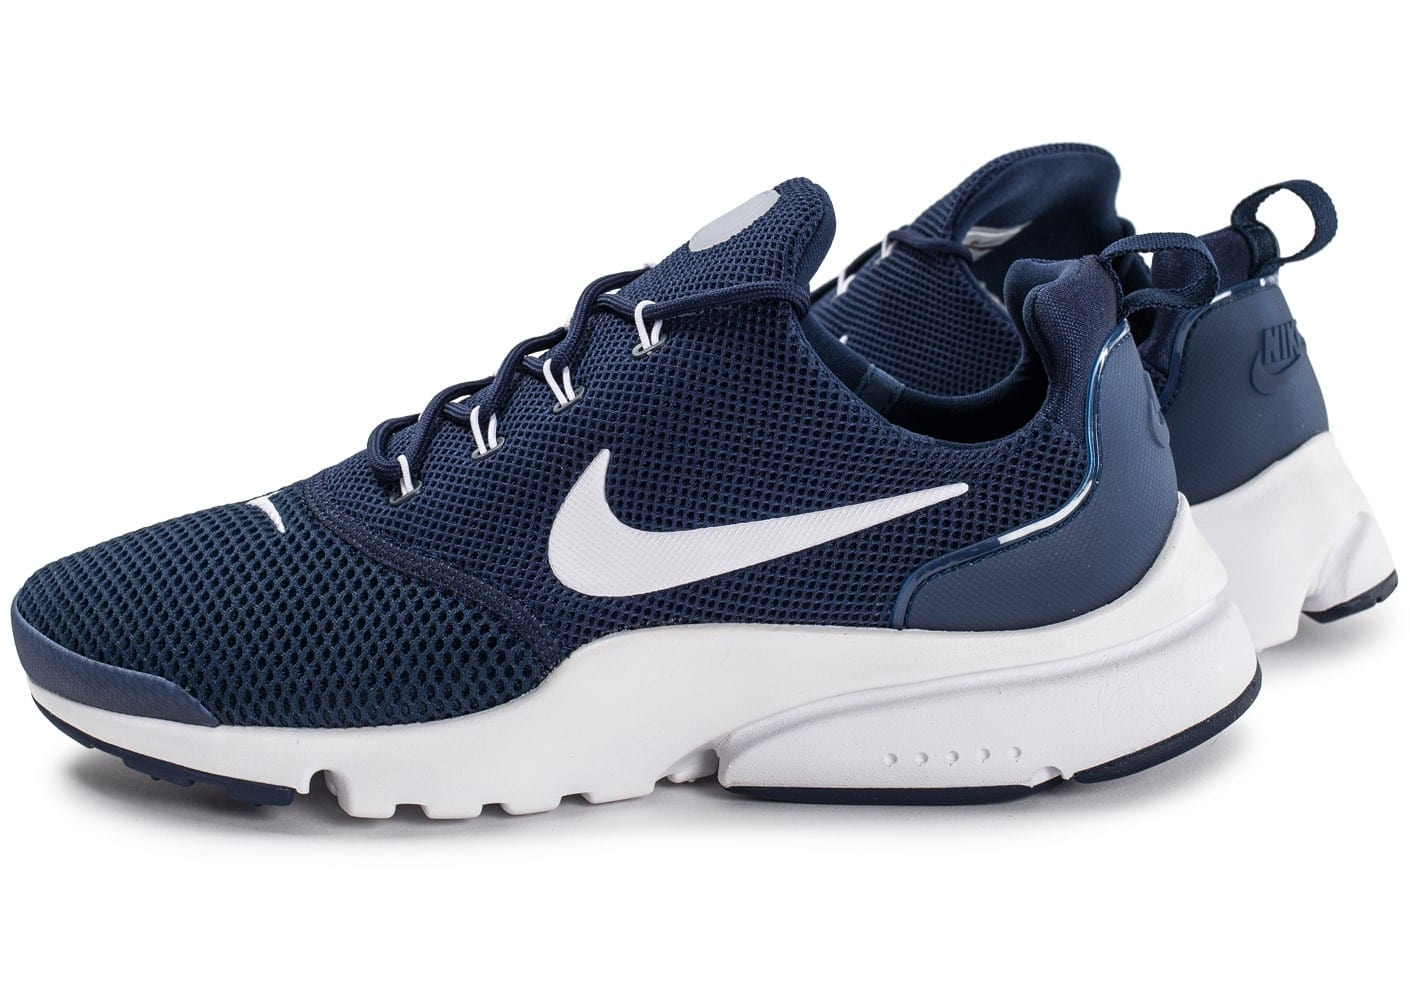 new specials pretty cheap another chance Nike Presto Fly bleu marine - Chaussures Baskets homme ...